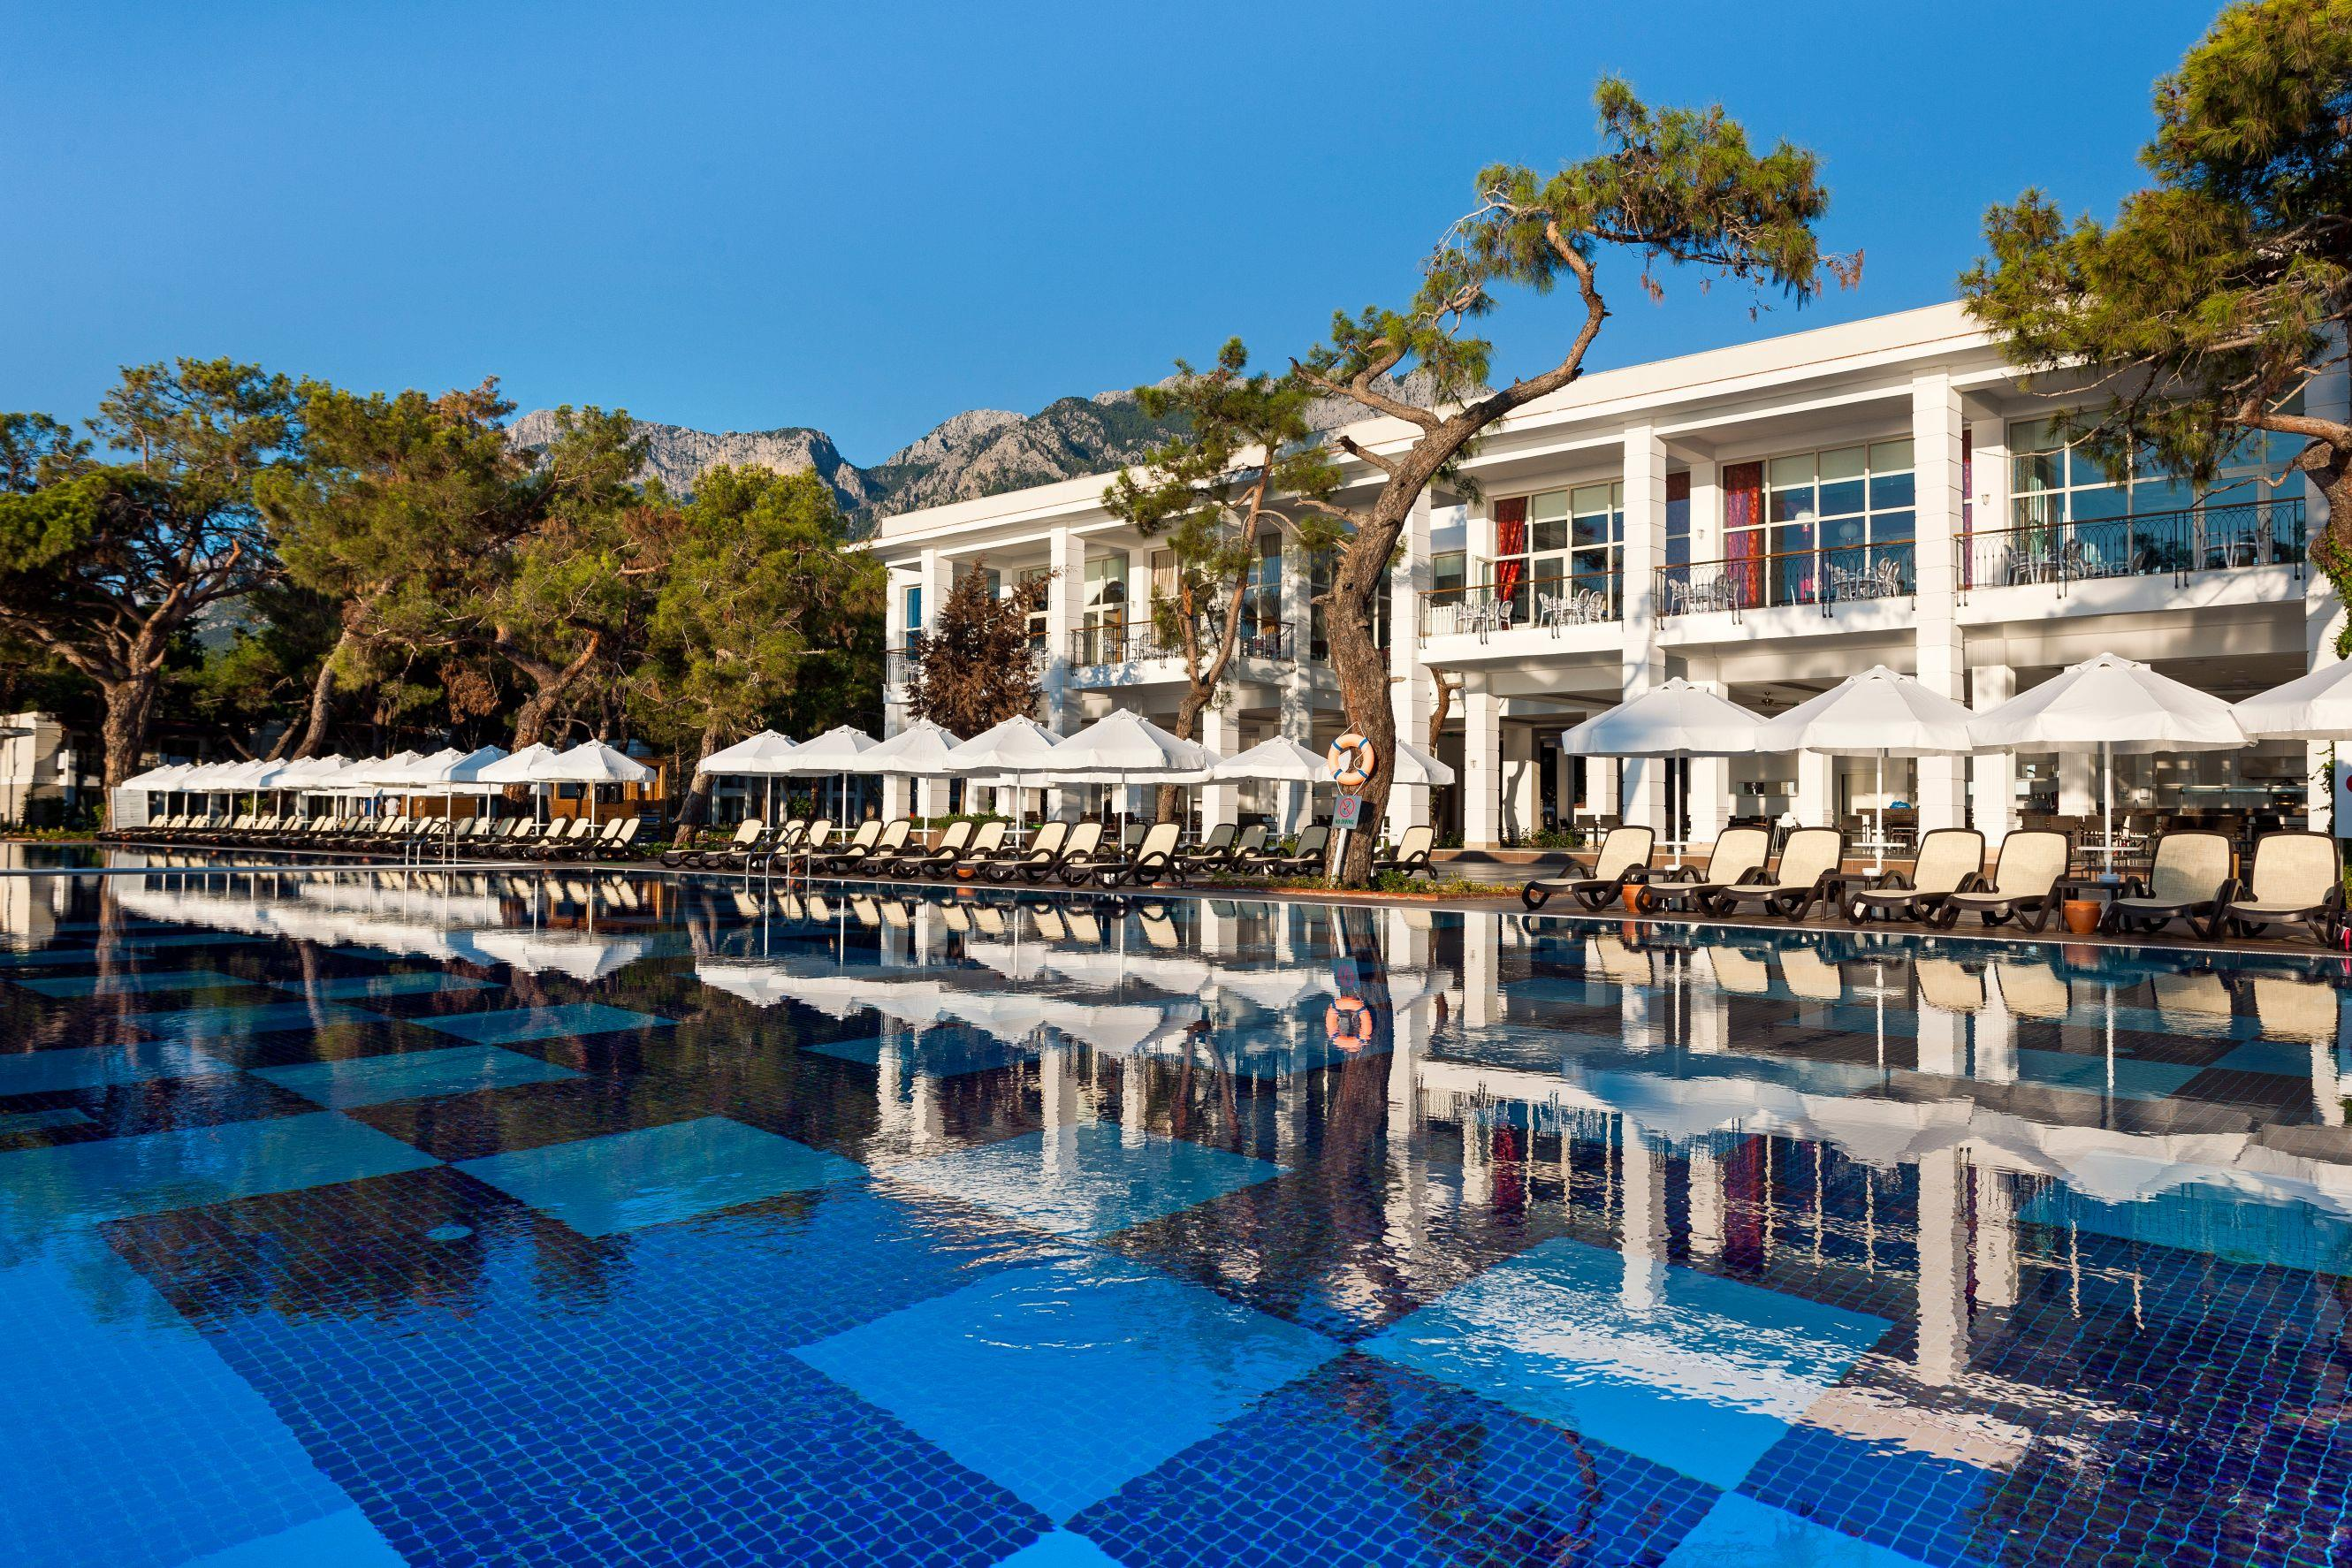 http://www.orextravel.sk/OREX/hotelphotos/sherwood-exclusive-kemer-general-0059.jpg